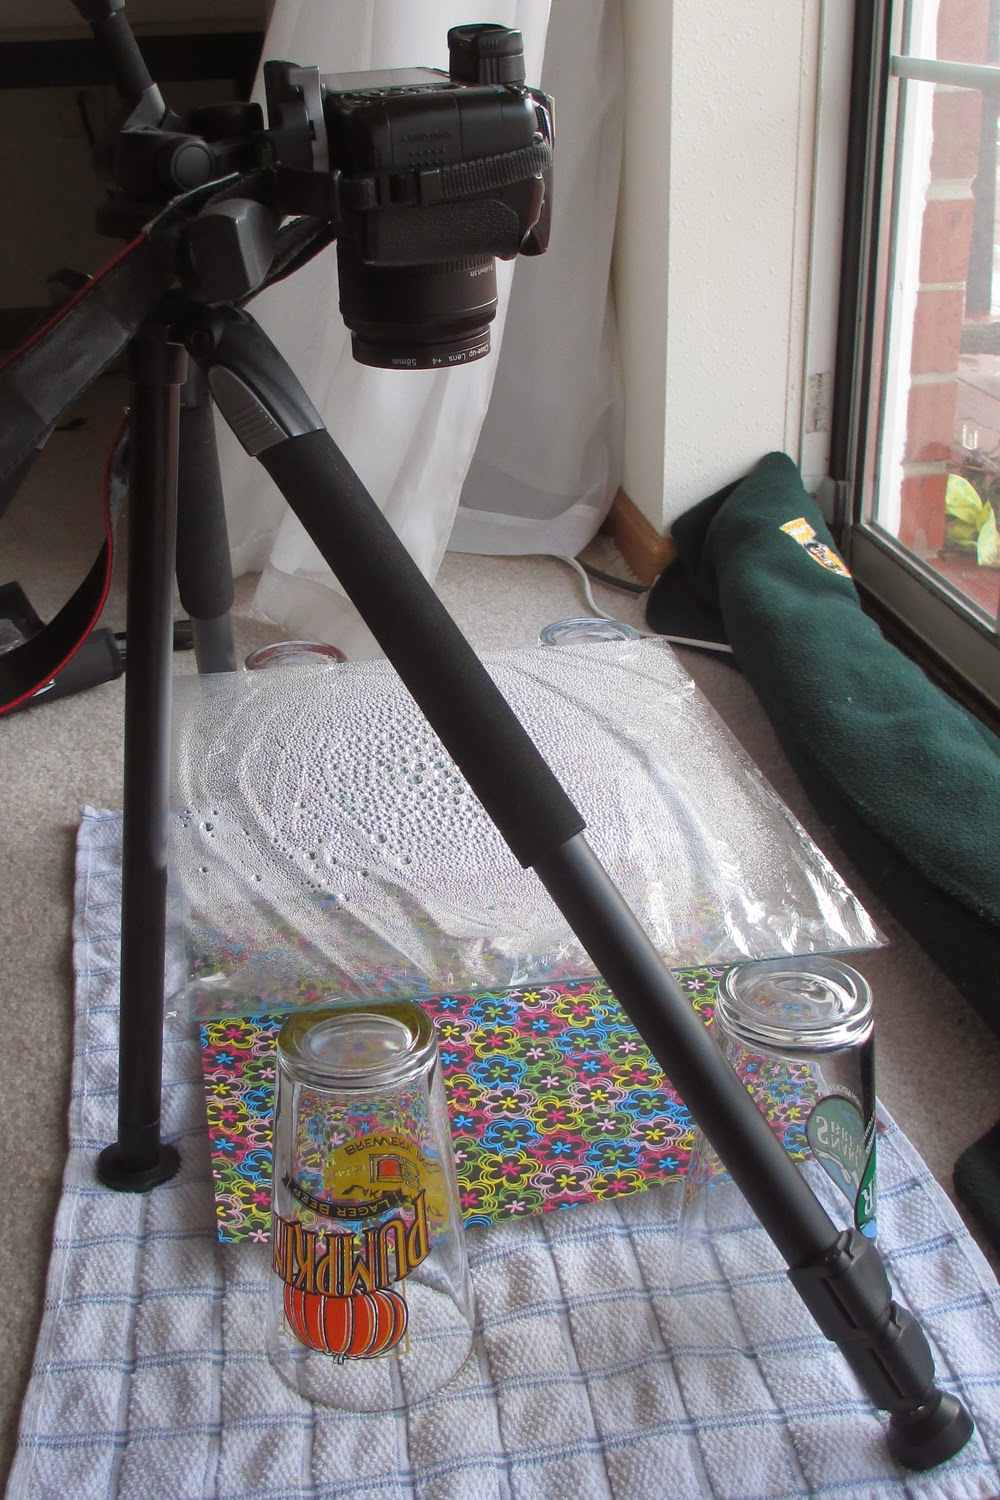 Setup for Droplet Refraction | Boost Your Photography